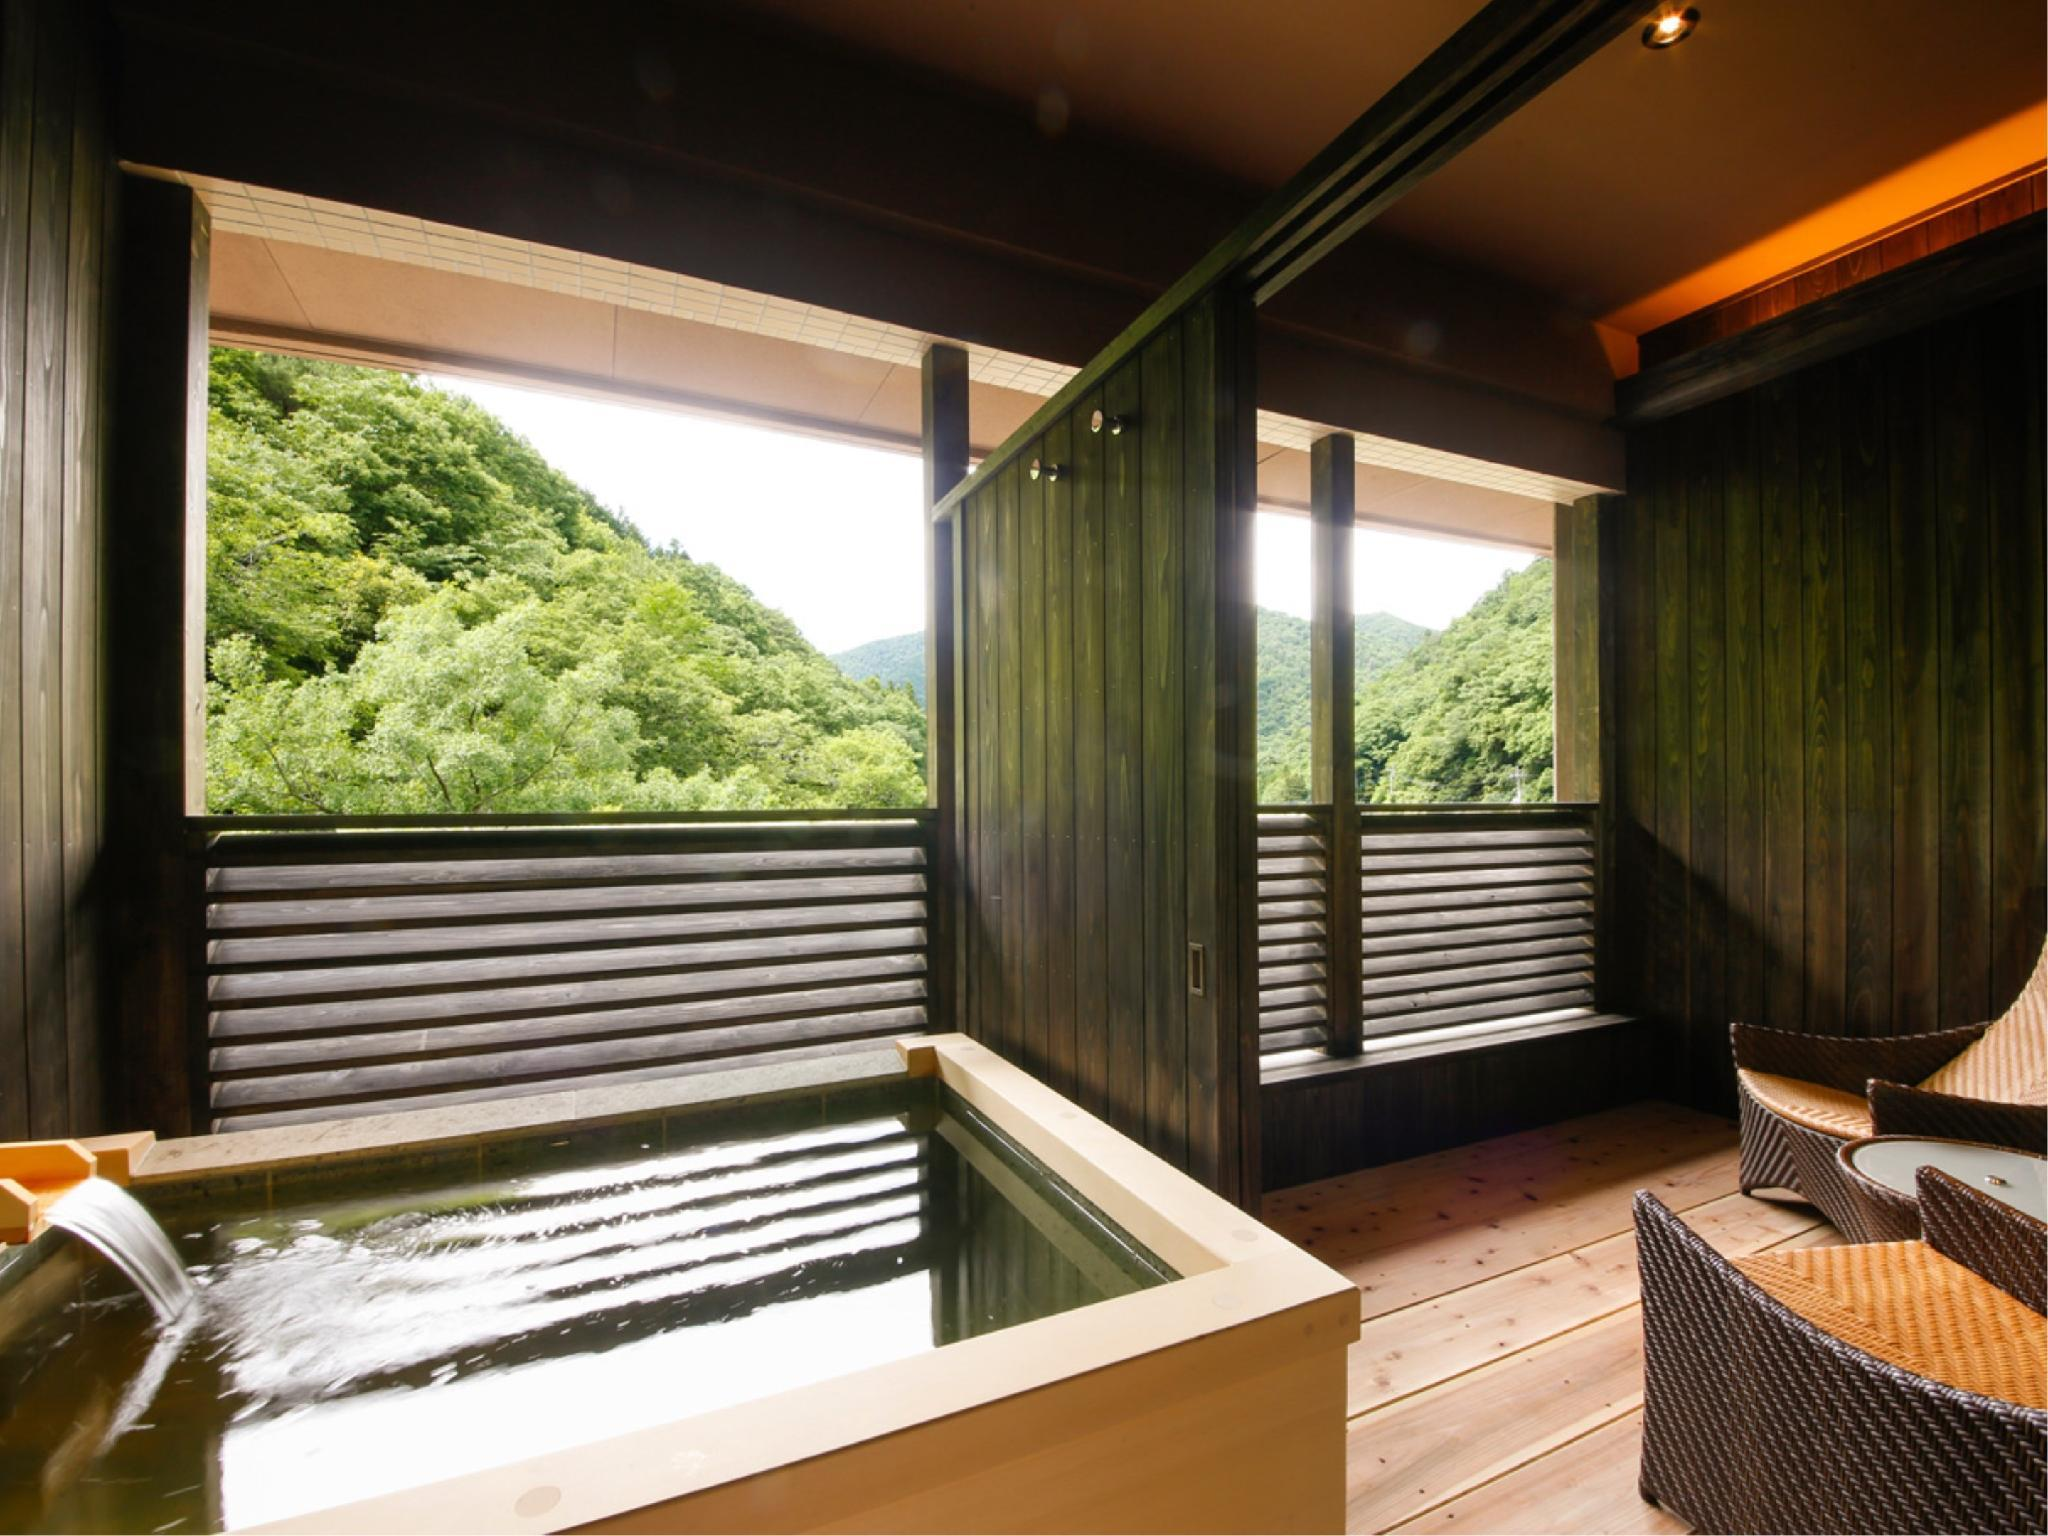 다다미 침대 객실 타입D(전용 노천탕) (Japanese/Western-style Room with Open-air Bath (Type D))